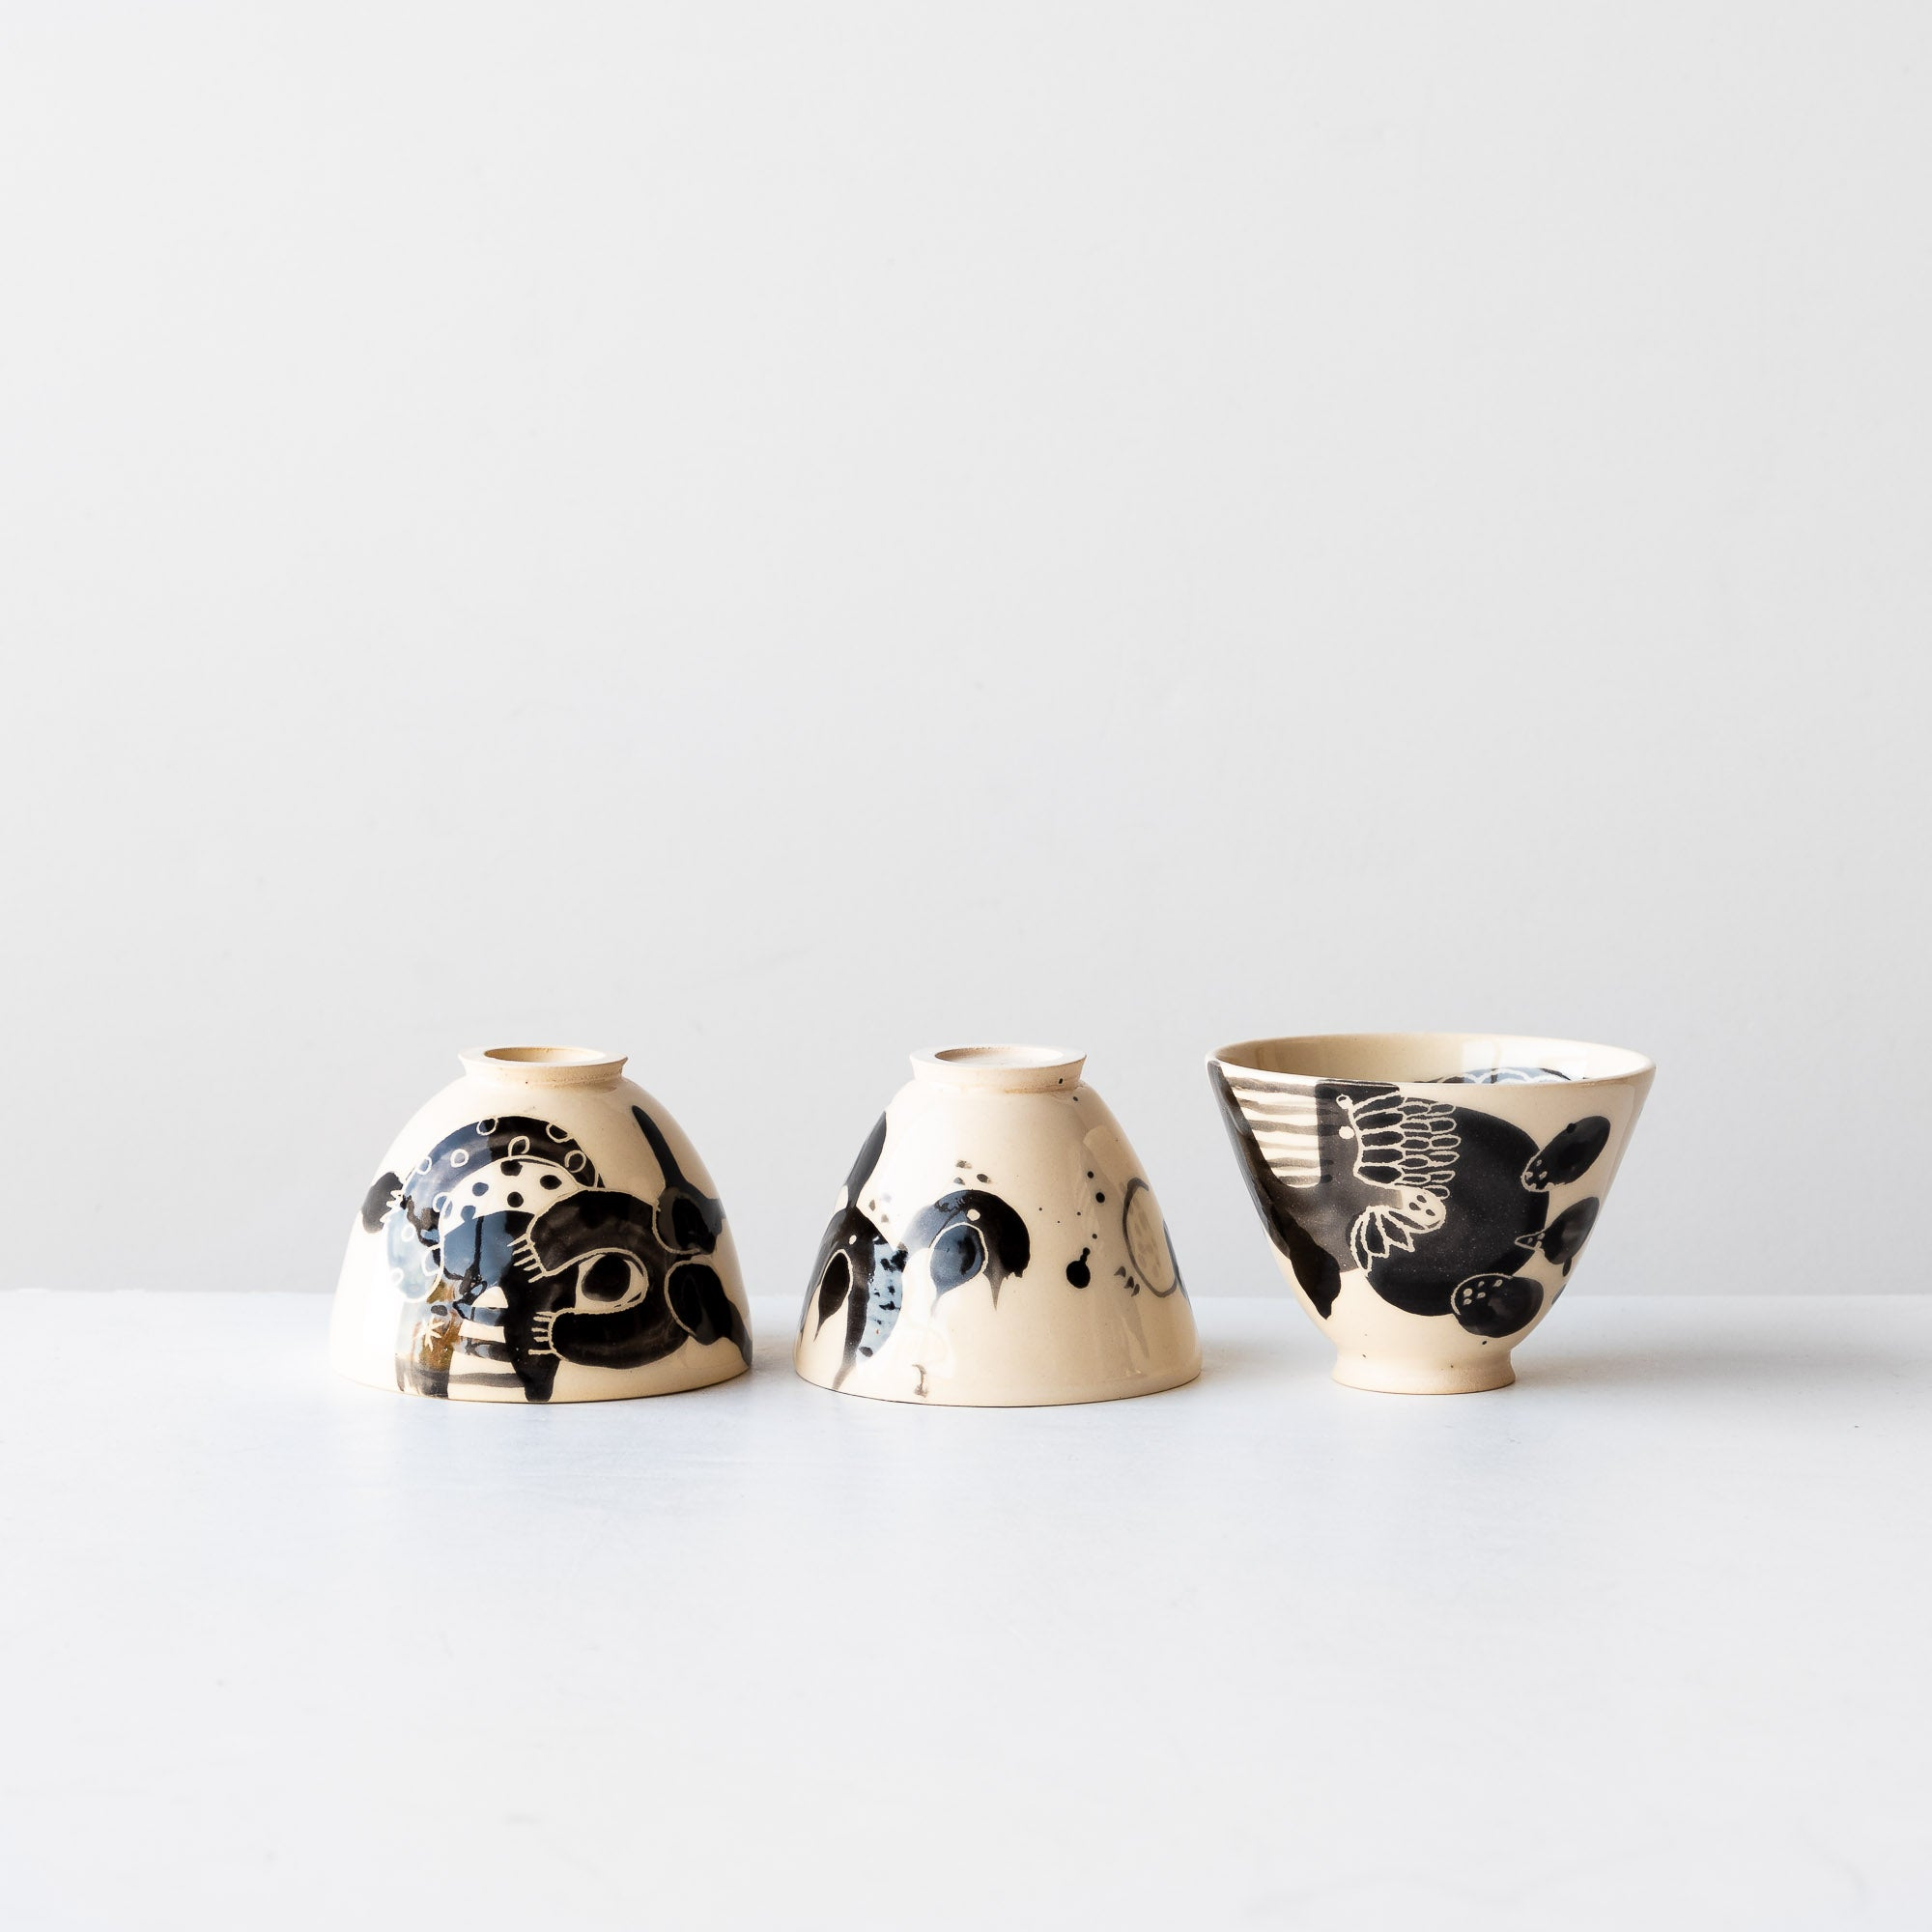 Three Black Lil' Hand Painted Earthenware Bowls - Sold by Chic & Basta